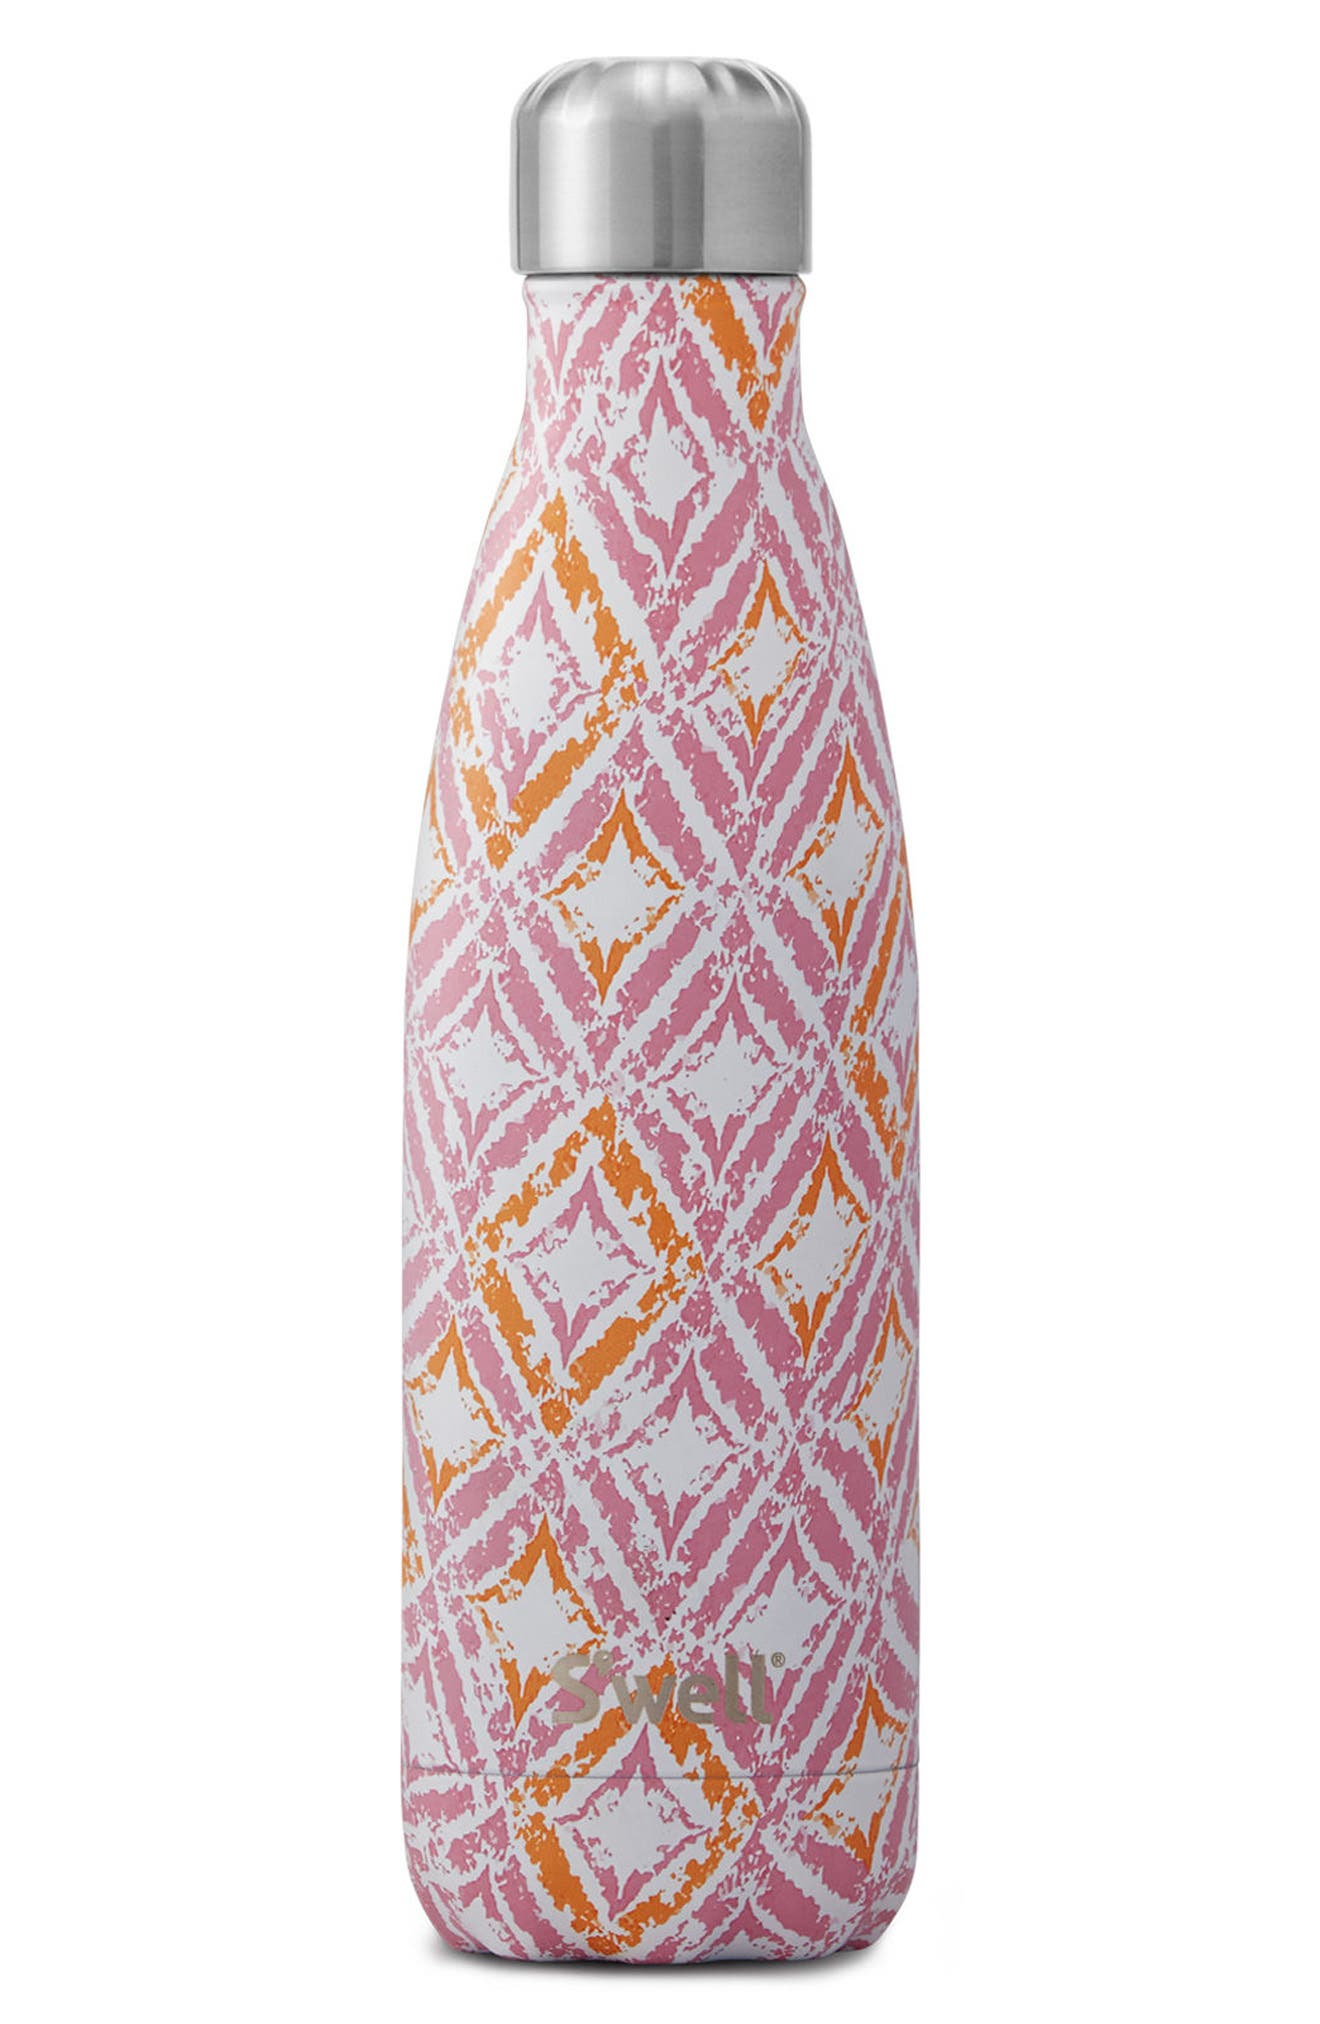 Odisha Insulated Stainless Steel Water Bottle,                             Main thumbnail 1, color,                             650